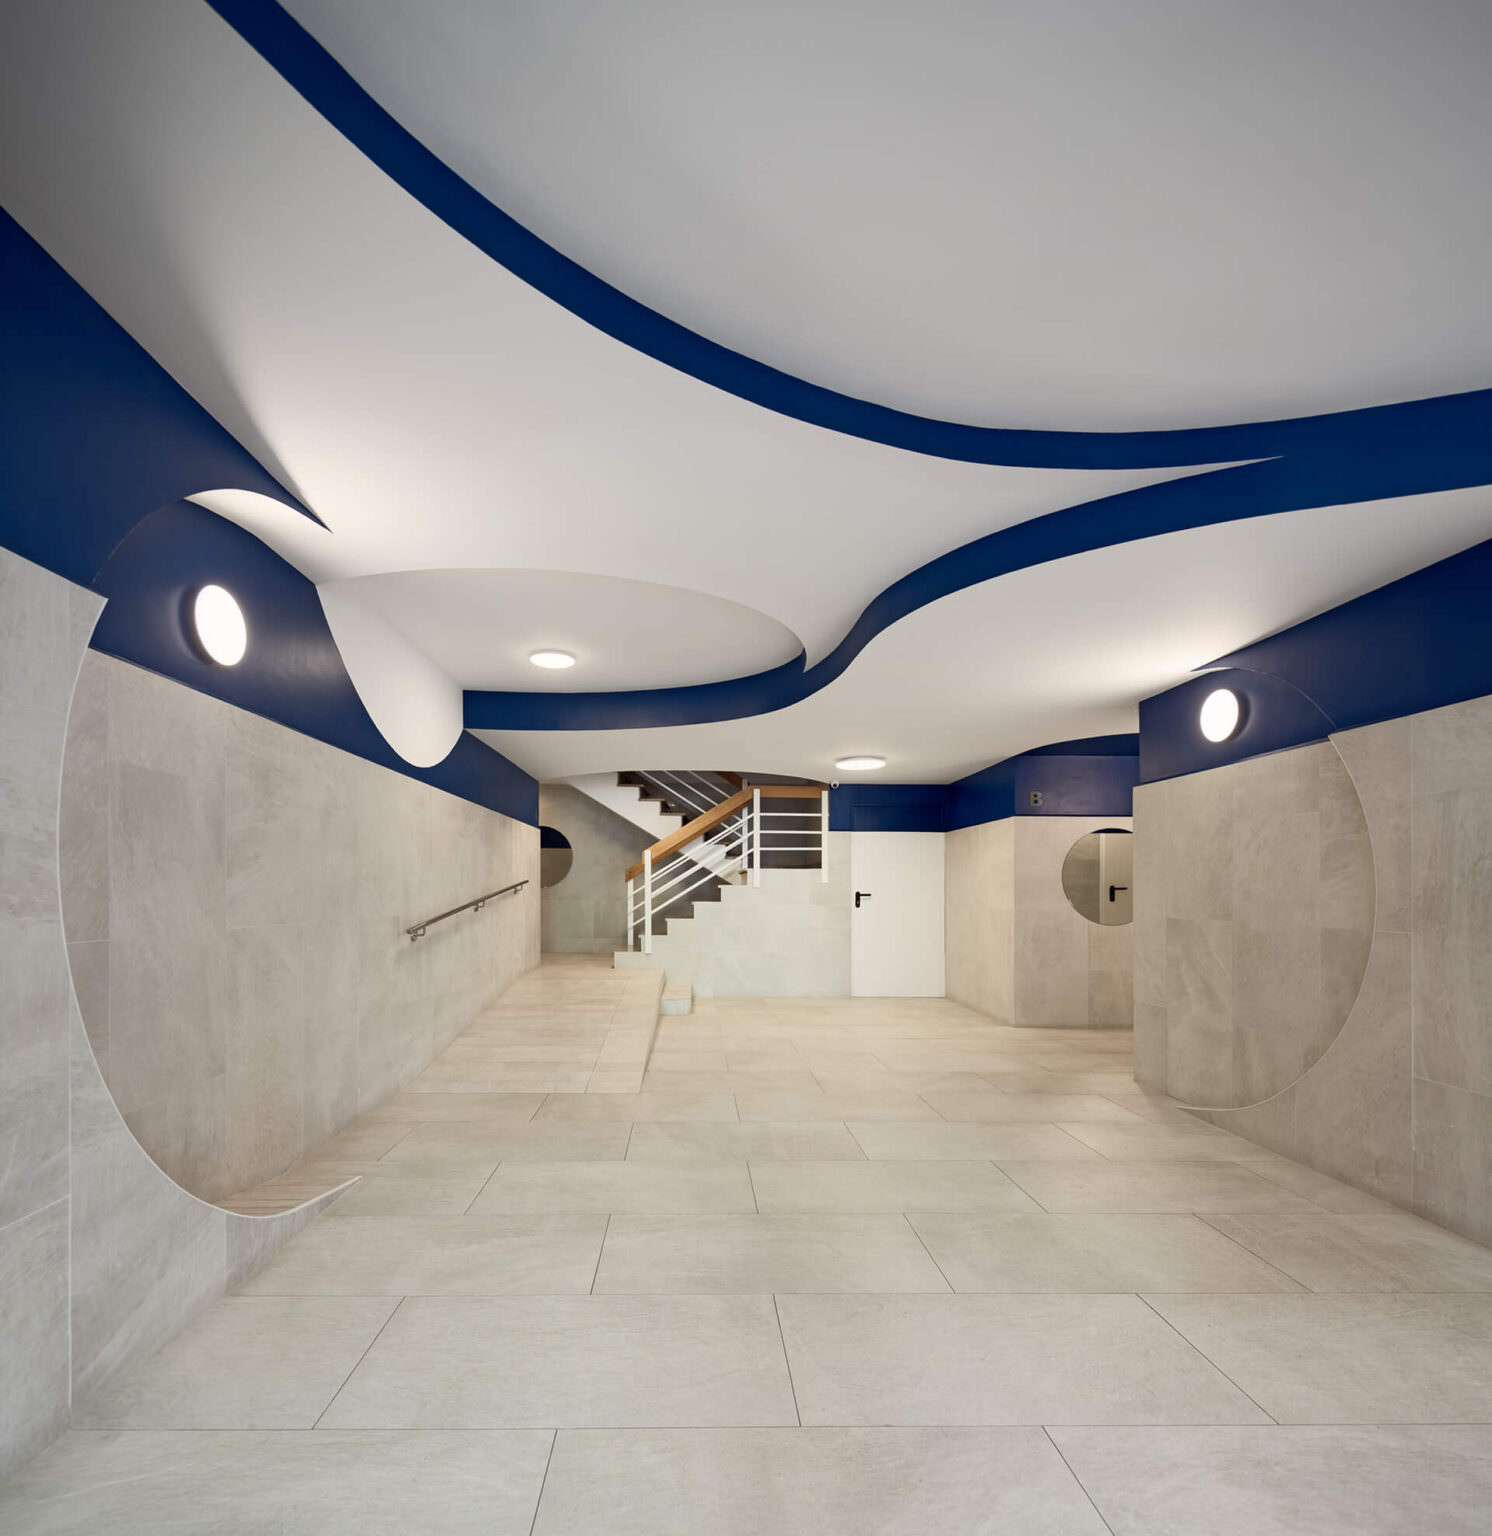 Miel Arquitects, Pintor Pahissa Lobby Interior Refurbishment, Photo Pol Viladoms | Yellowtrace